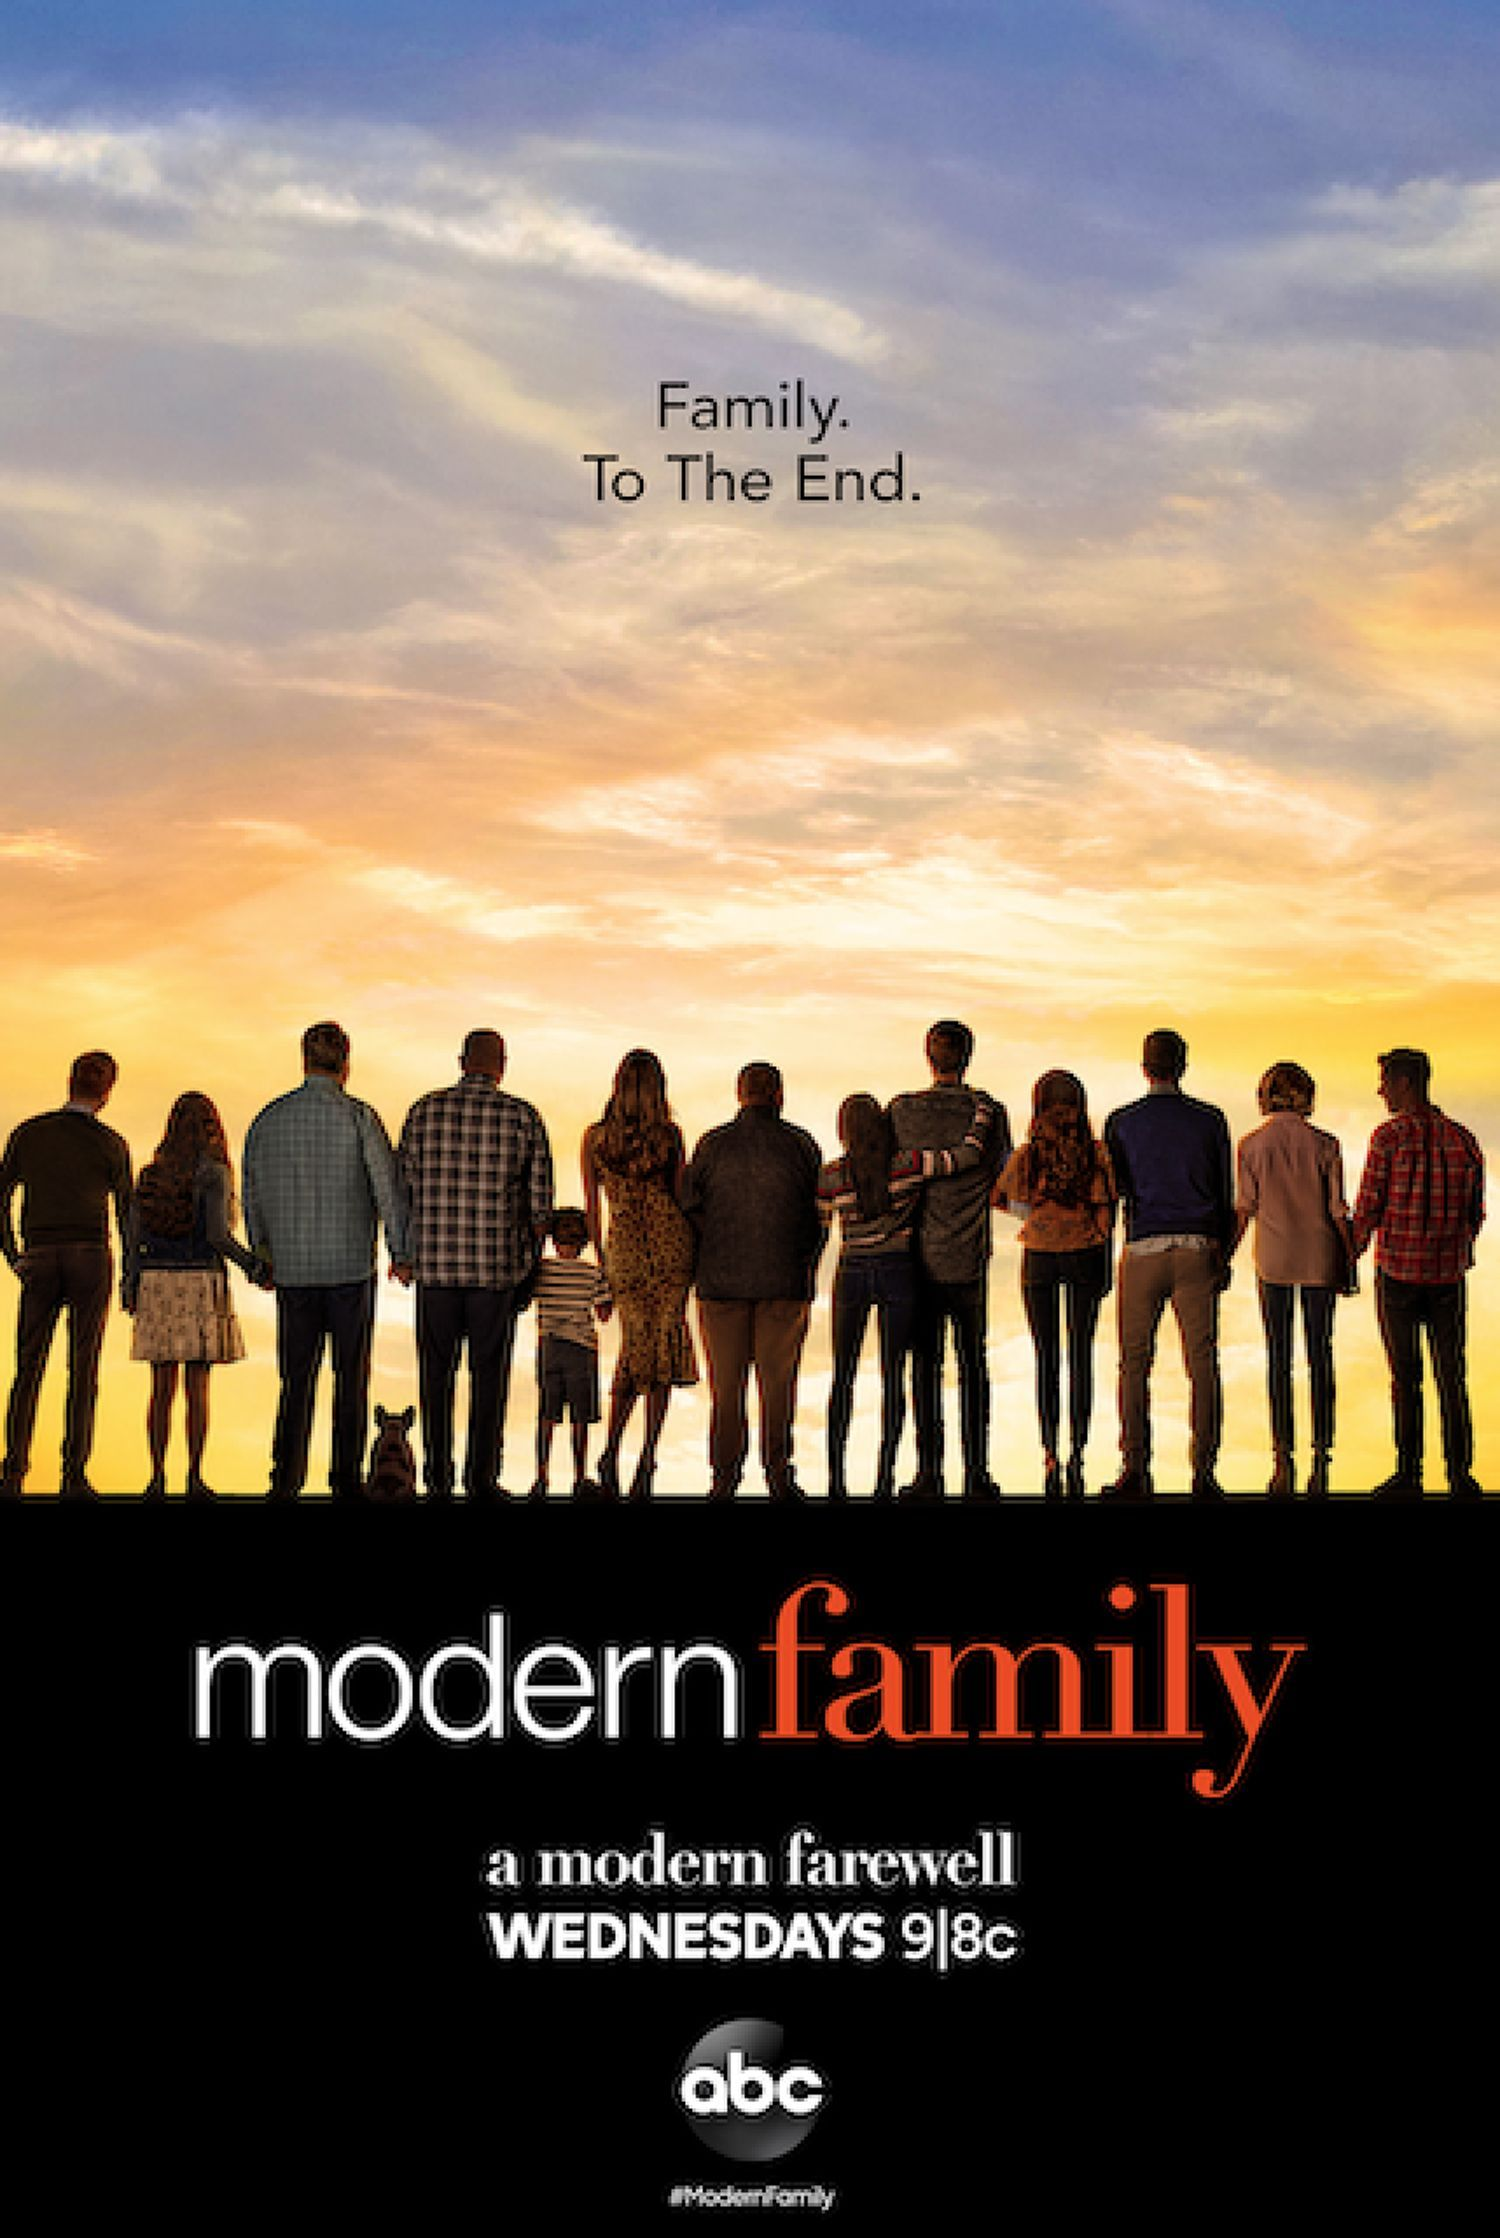 Abcs Promotional Photo For Modern Familys Final Episodes Will Tug At Your Heart Strings In 2020 Modern Family Tv Show Modern Family Modern Family Season 1